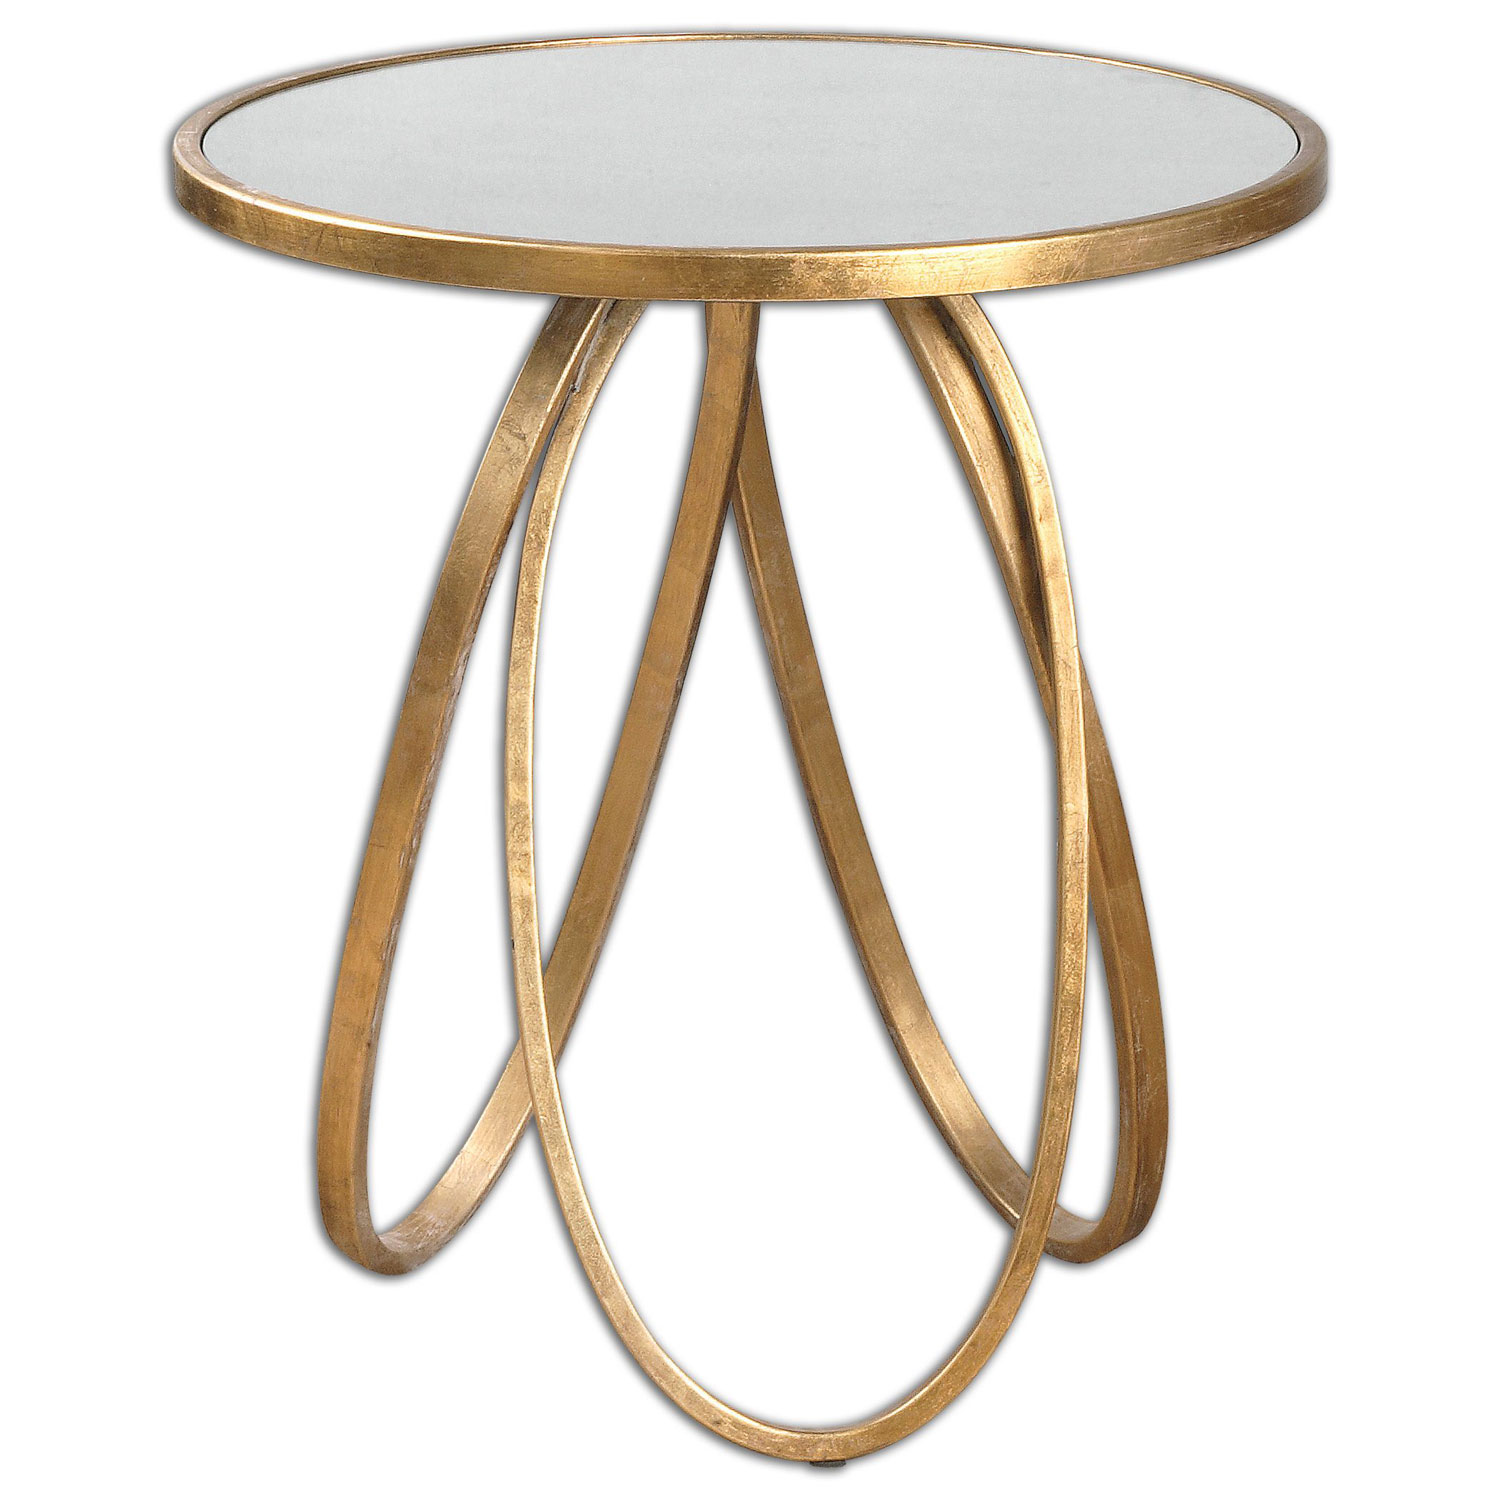 uttermost montrez glazed gold accent table bellacor hover zoom canopy umbrella foot patio entry for small spaces nautical island lighting drum throne wide nightstand kids